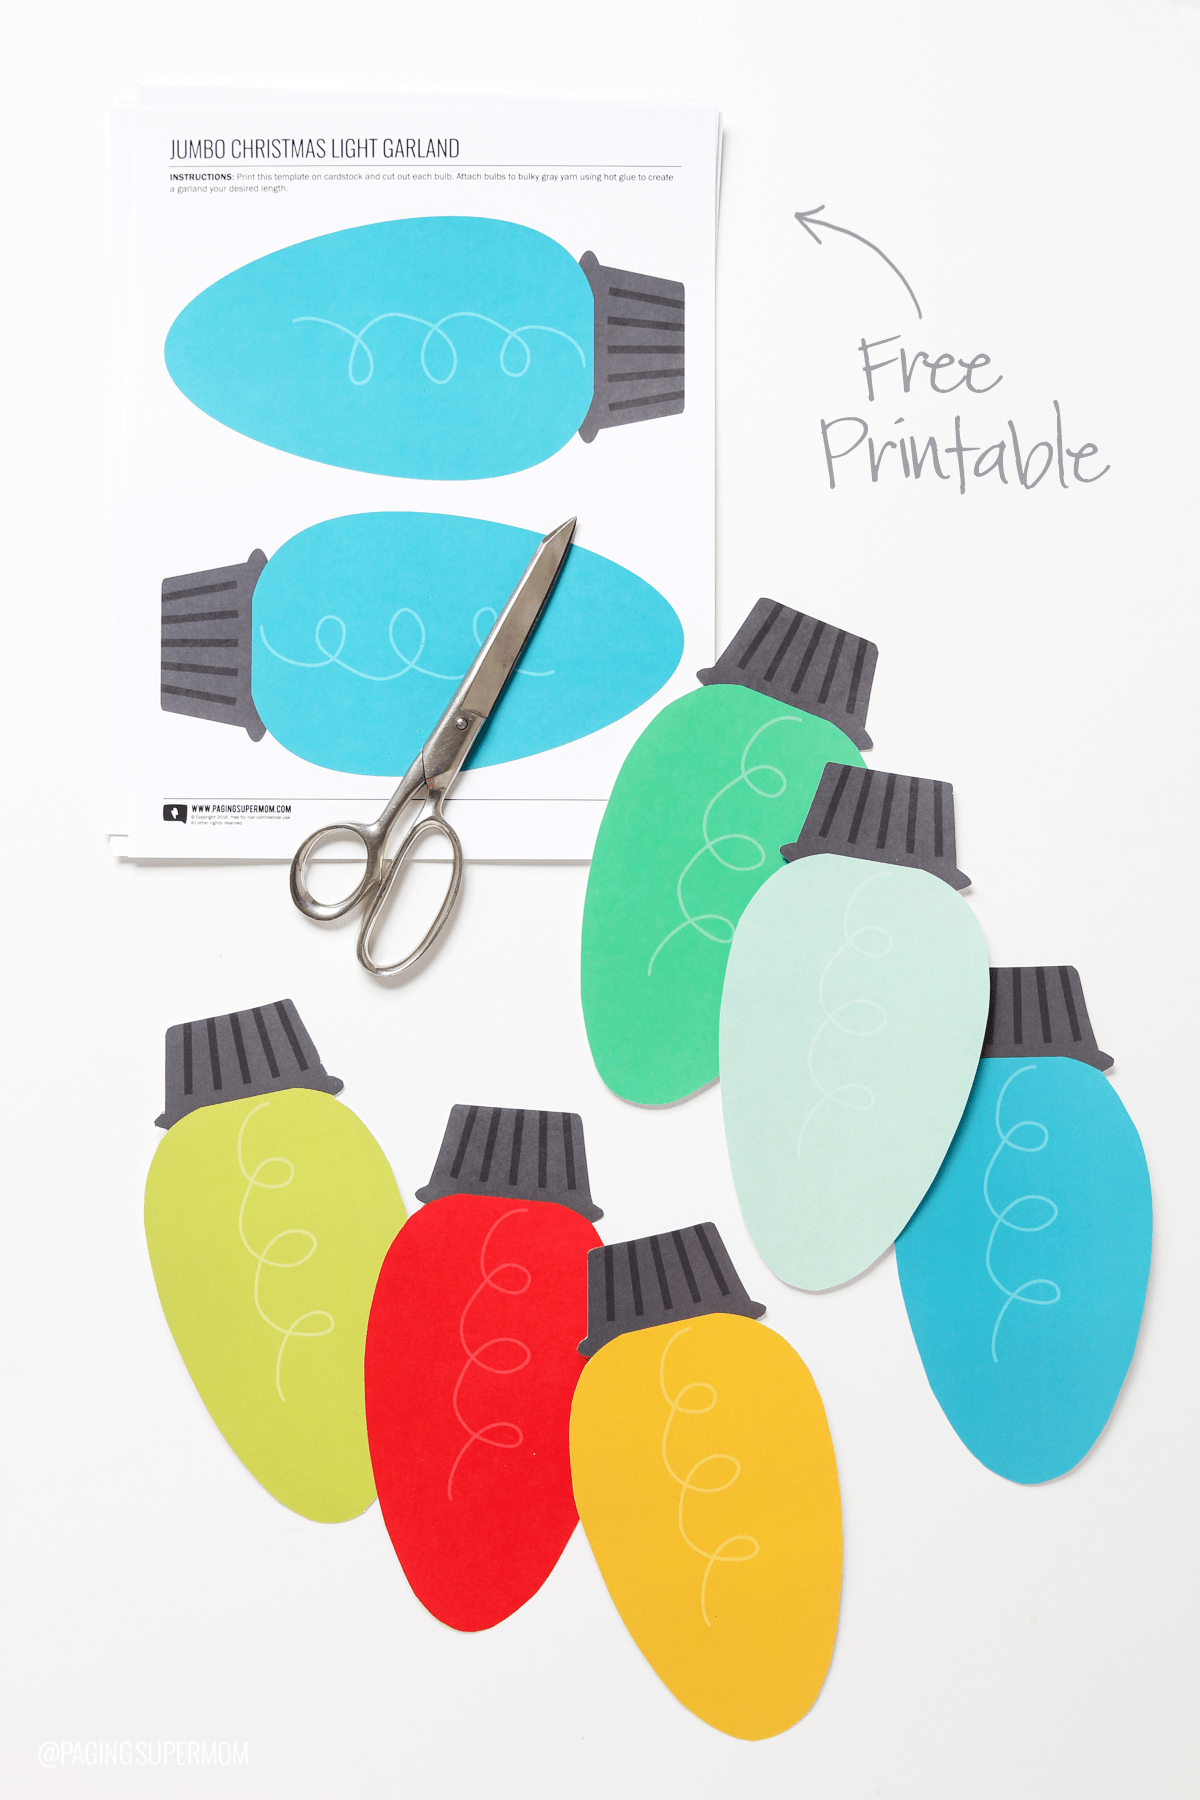 Free Printable Christmas Lights Garland Decorating